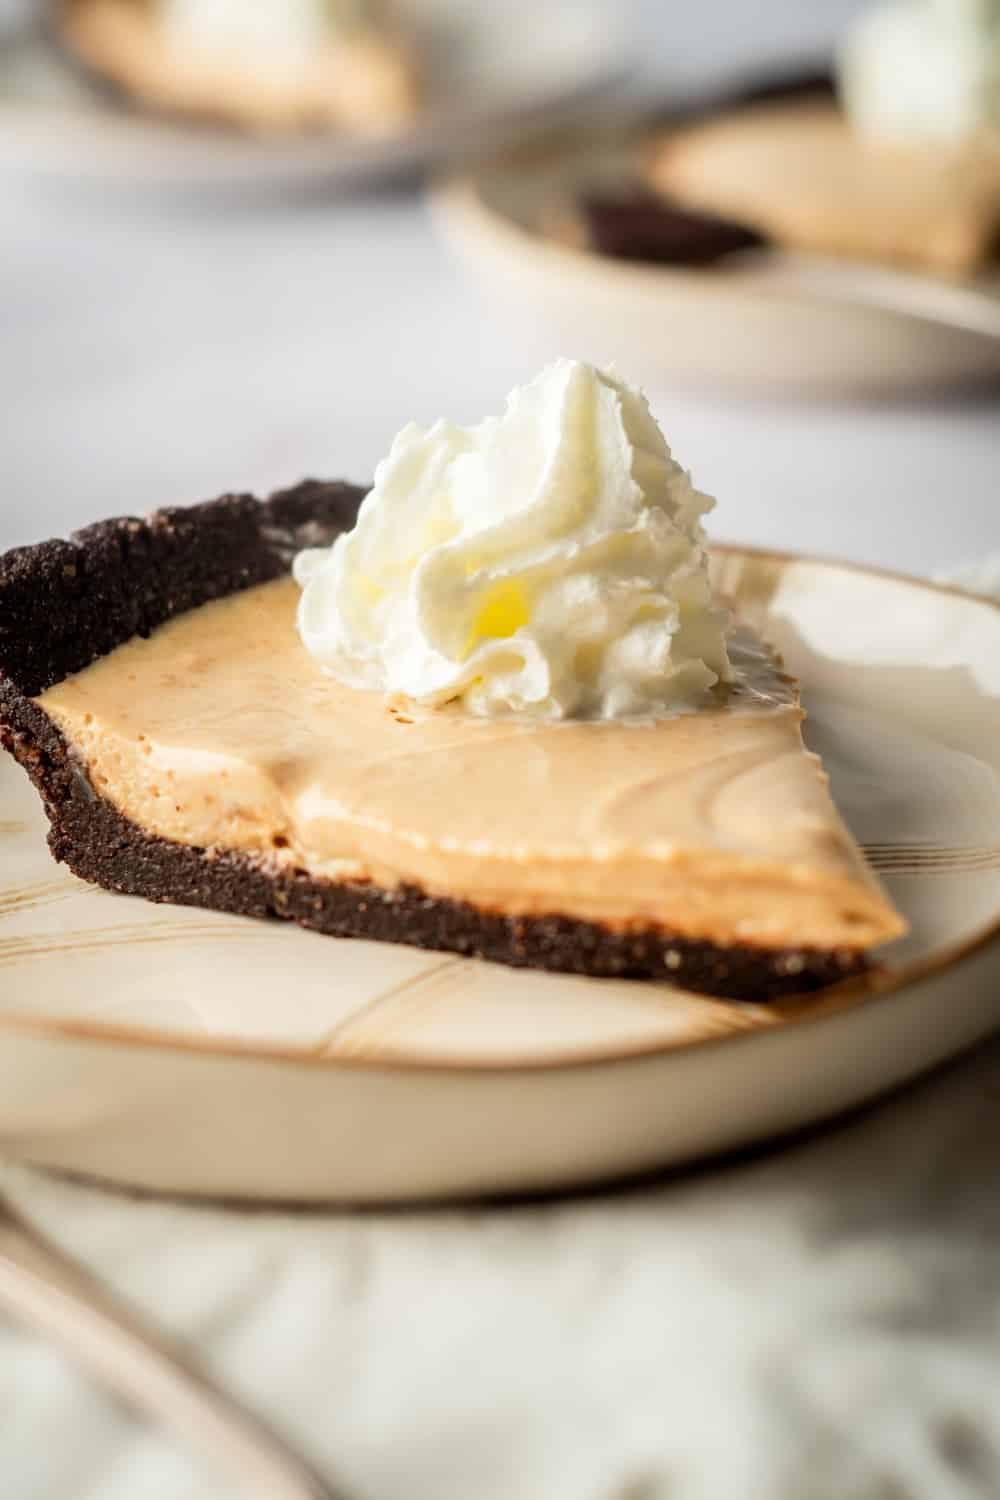 A plate with a slice of peanut butter chocolate pie on it.